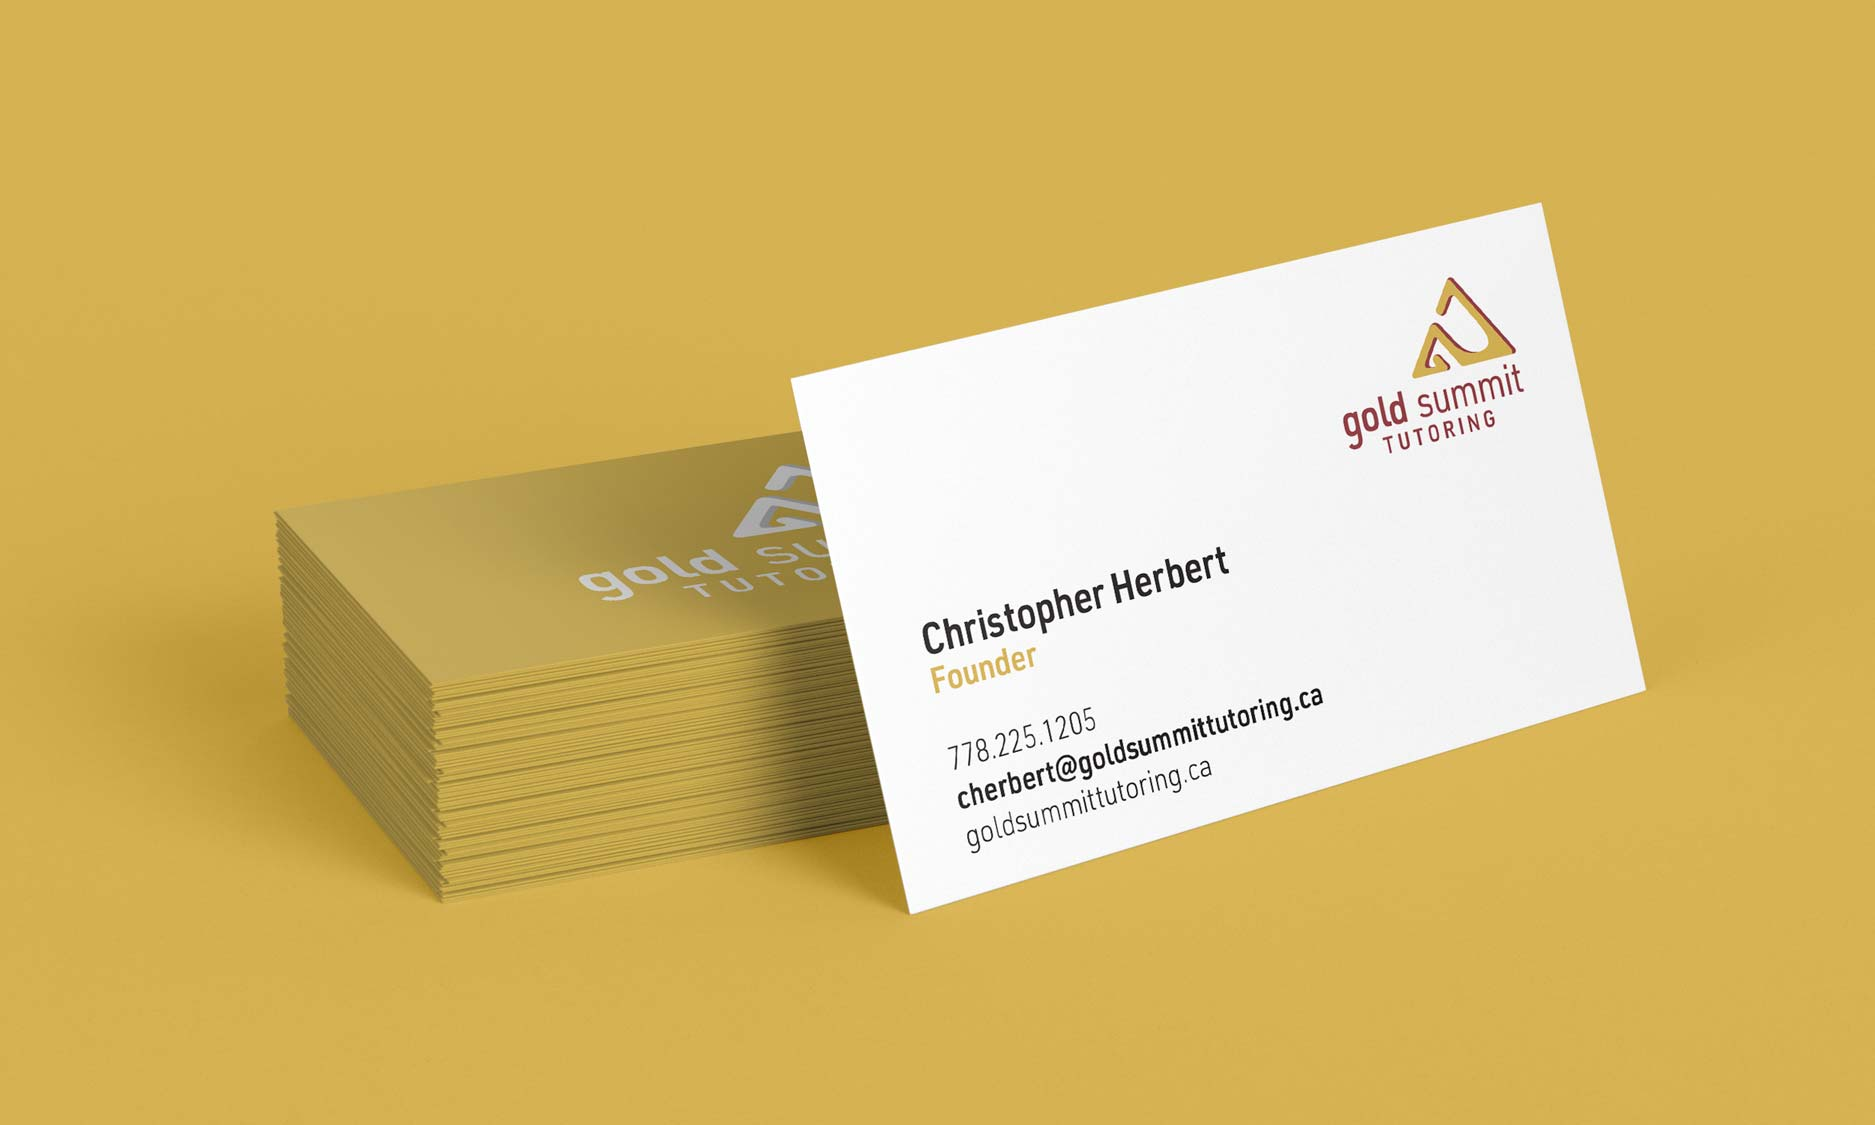 business card design for Gold summit tutoring by Alina Demidova